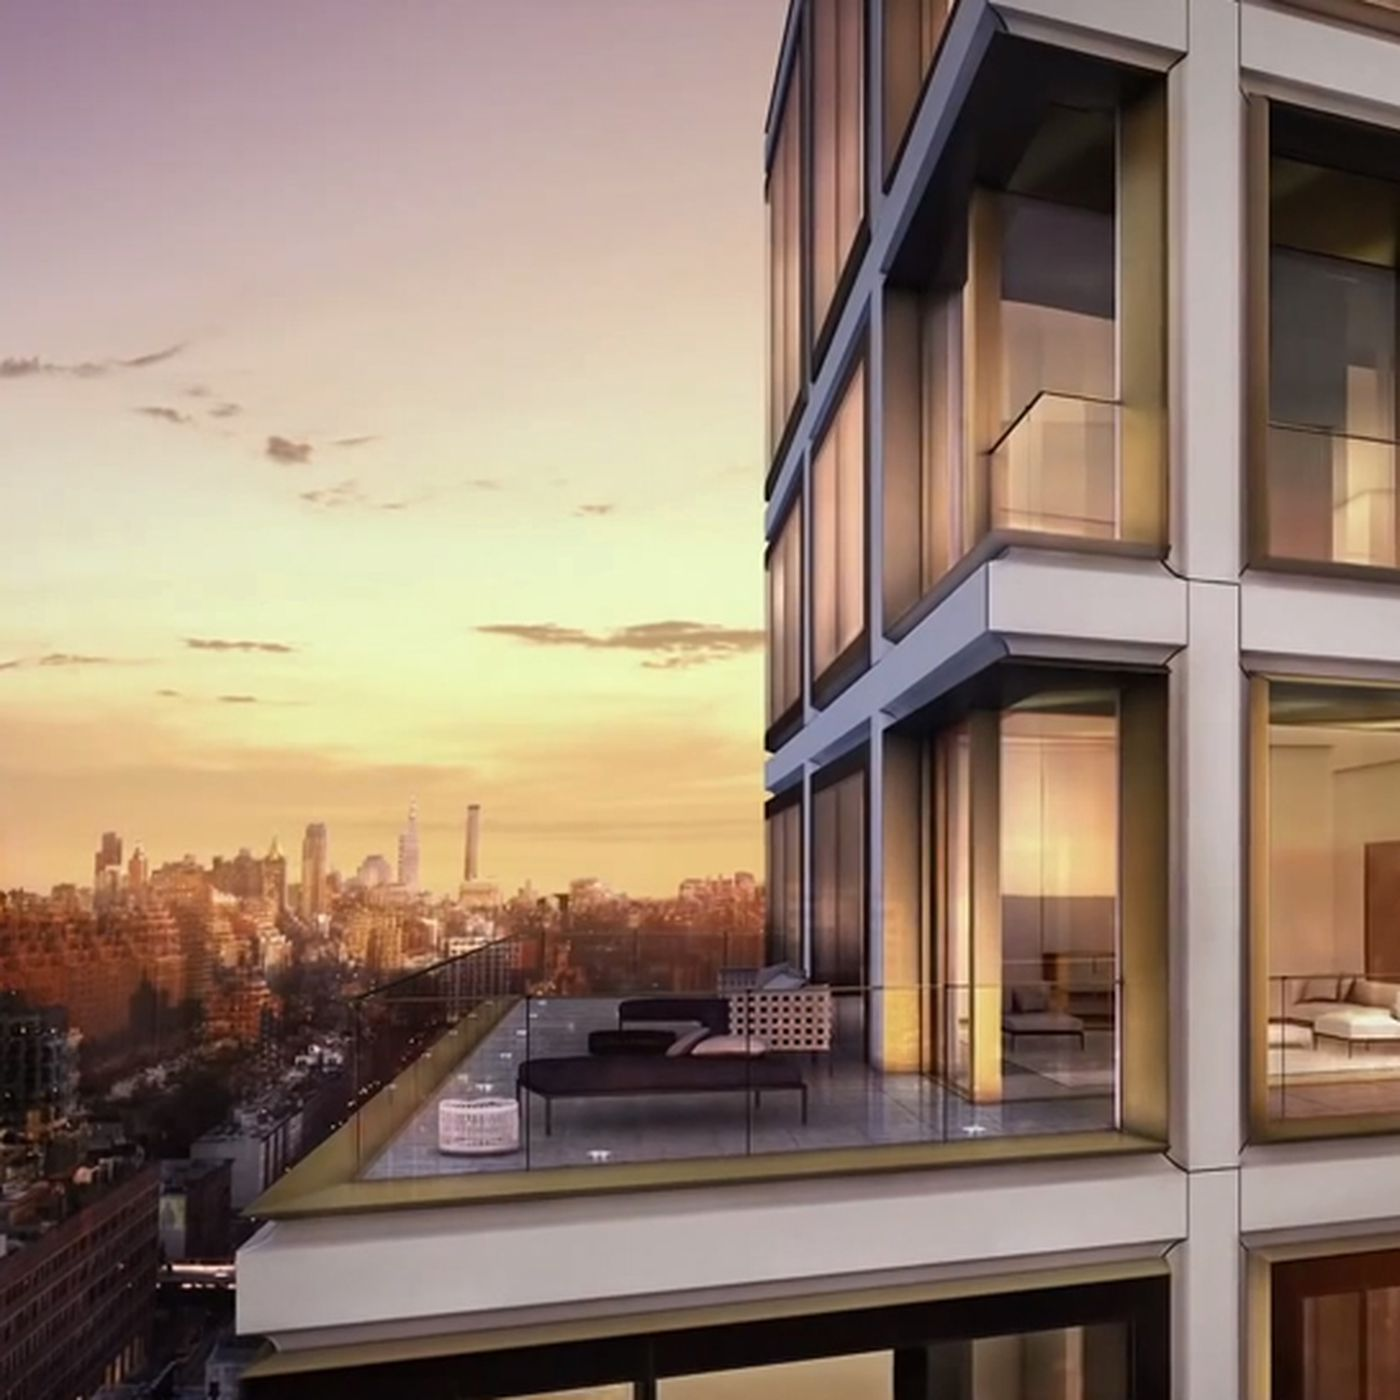 West Chelsea Penthouse In Norman Foster Designed Condo Sells For $38M